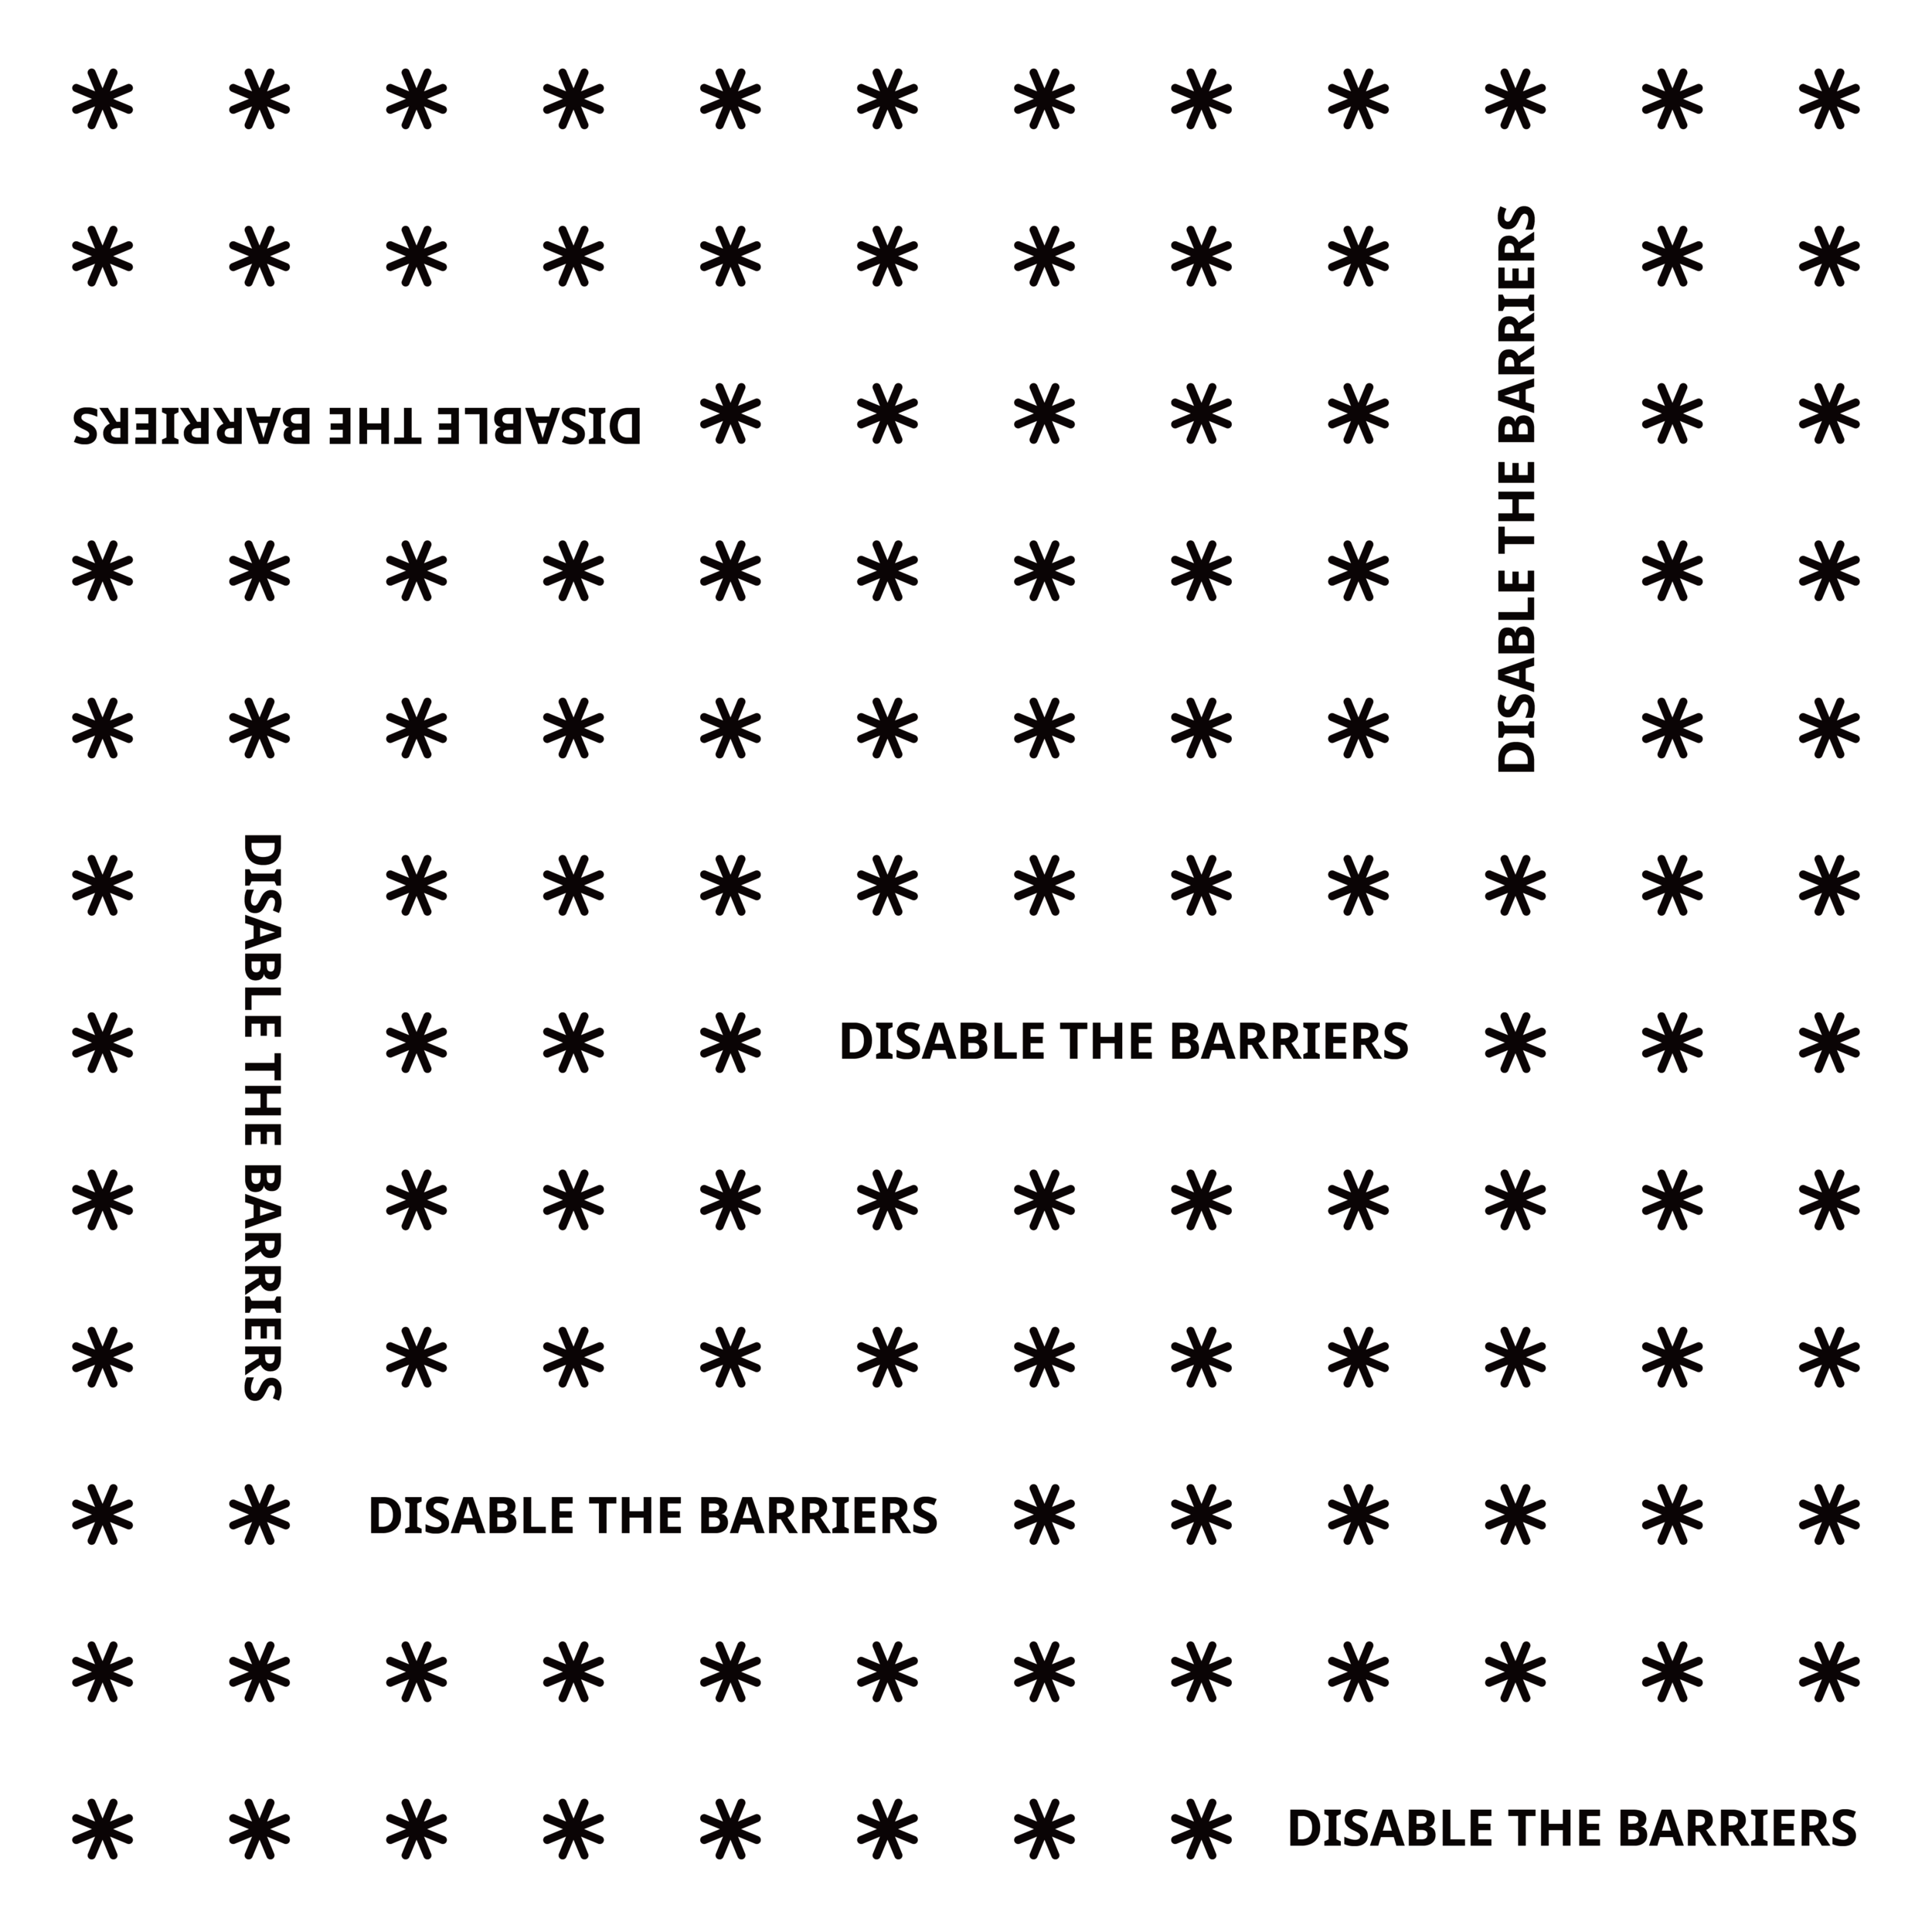 Disable the Barriers bandana design